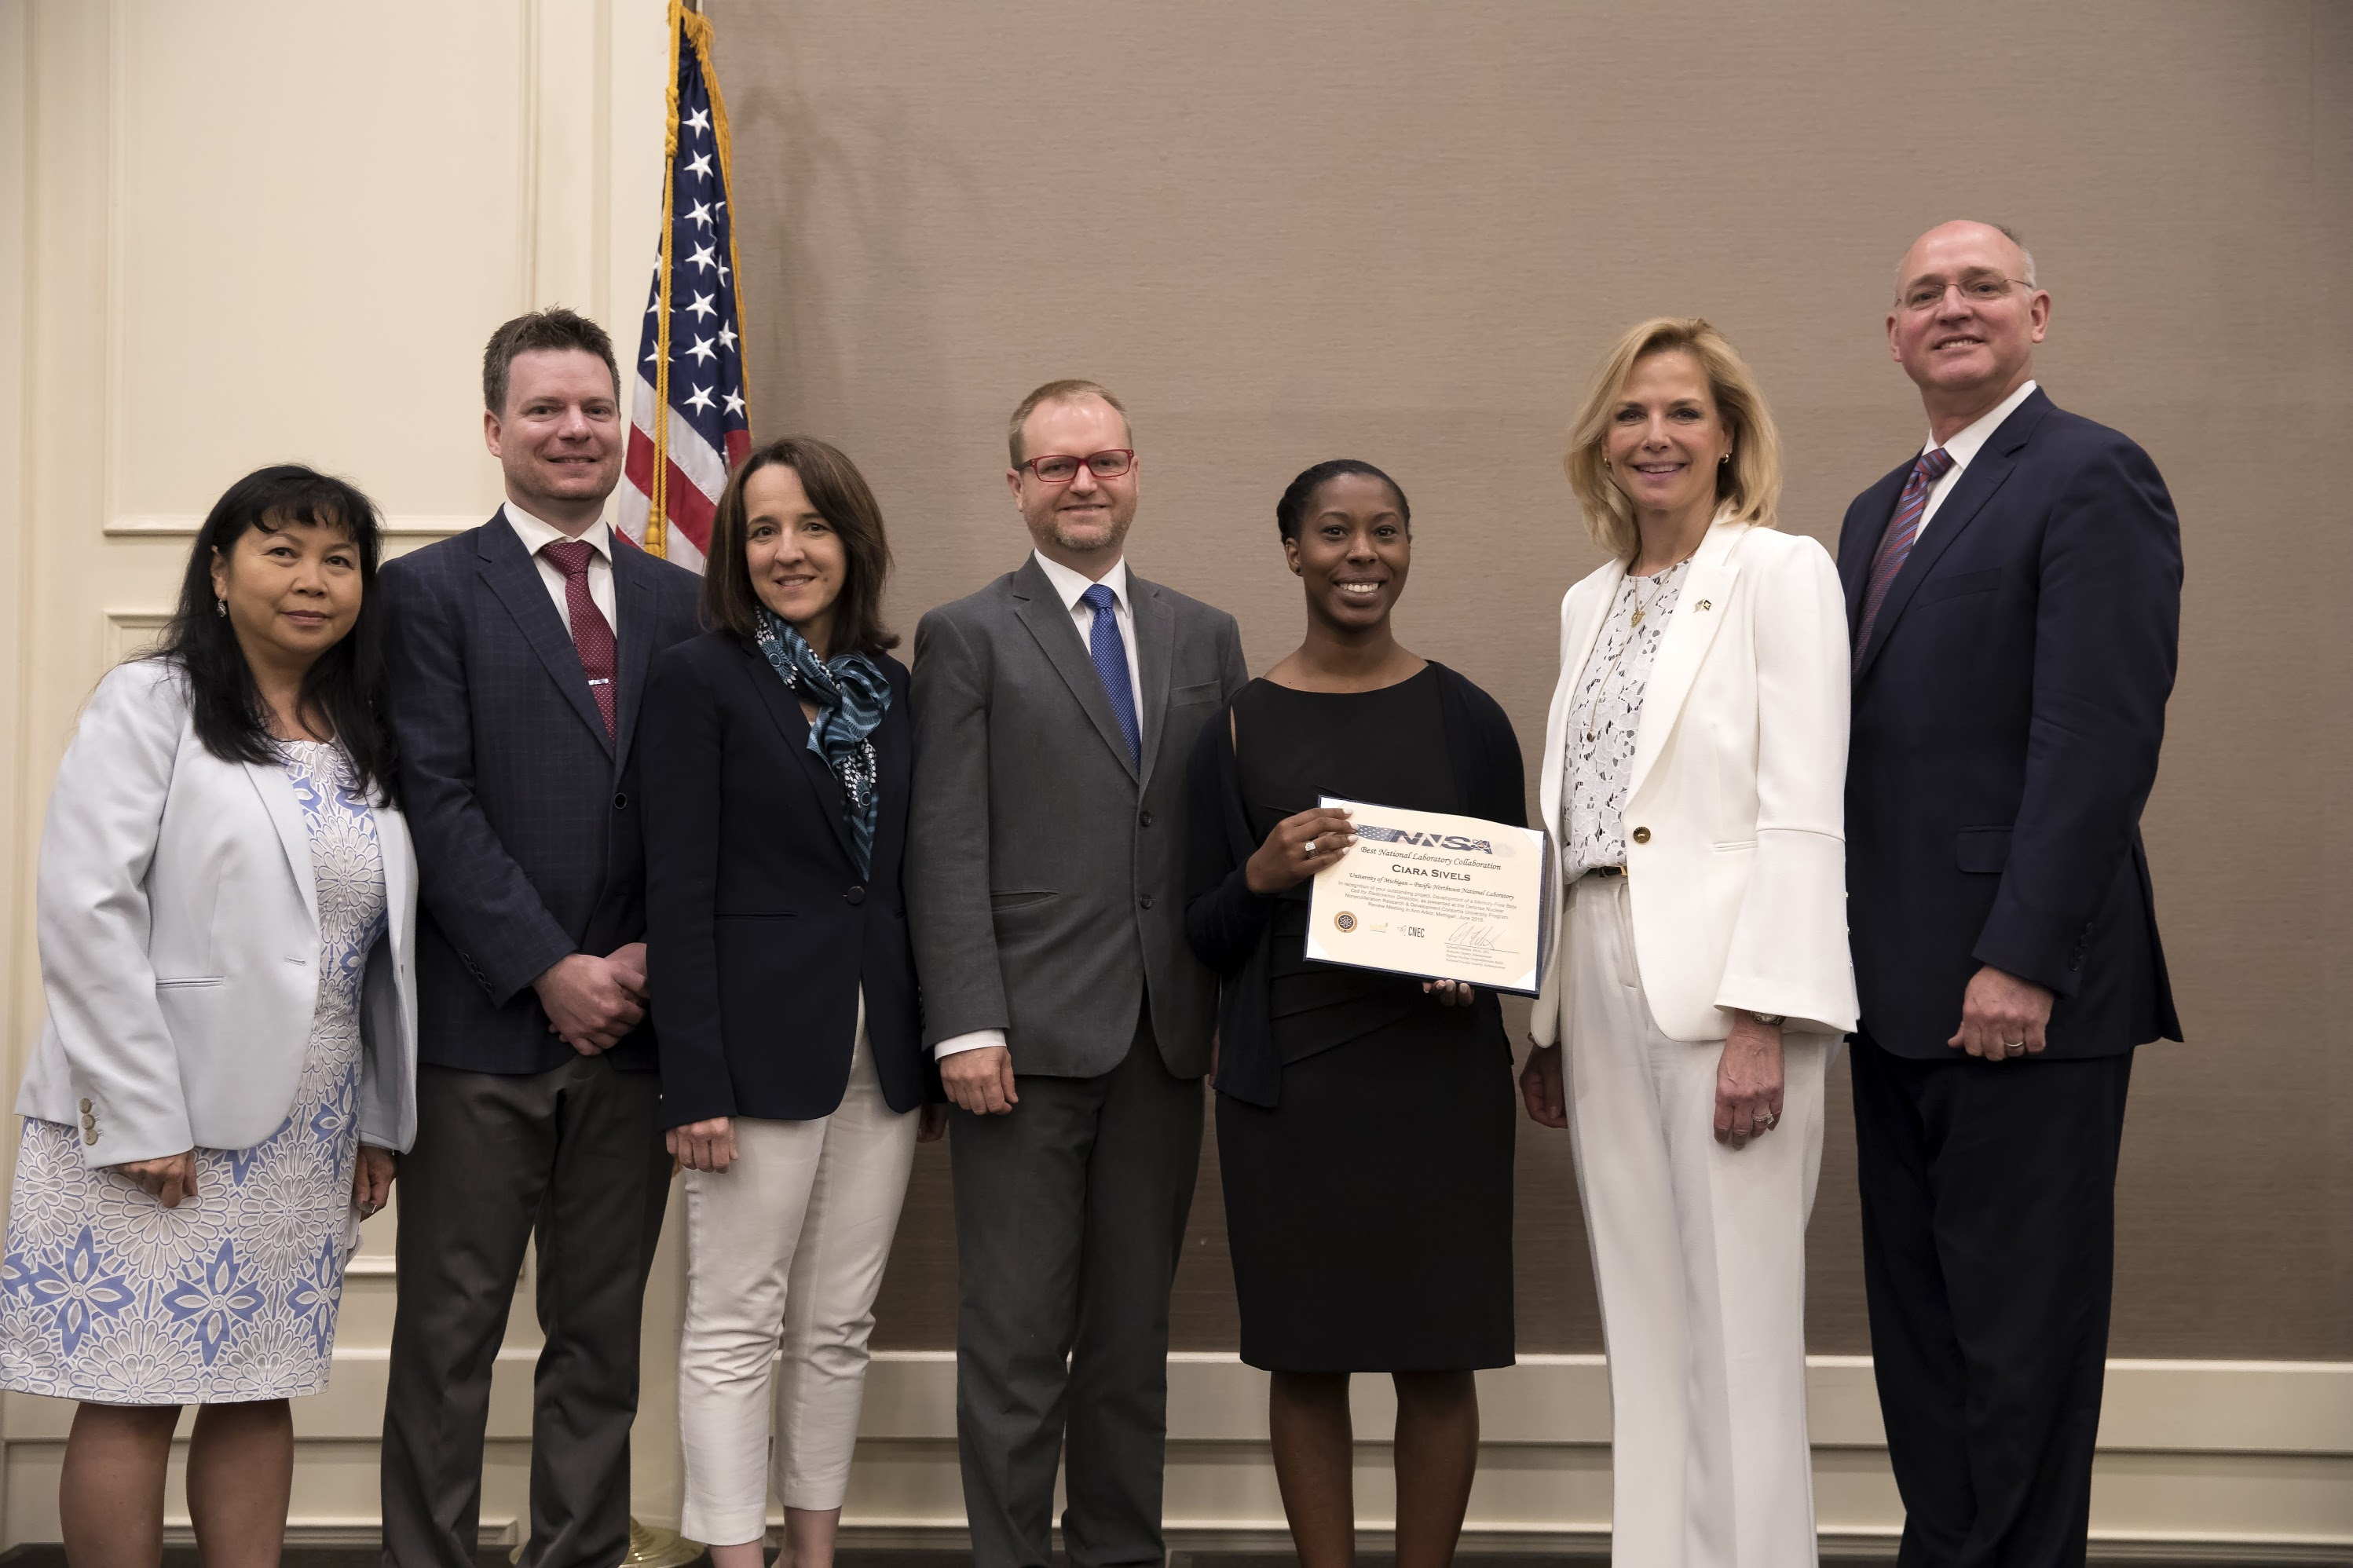 Ms. Lisa Gordon-Hagerty awards a National Laboratory Impact award to Ms. Ciara Sivels. Left to right: Dr. Victoria Franques, Dr. Shaun Clarke, Prof. Sara Pozzi, Dr. Luke Erikson, Ms. Ciara Sivels, Ms. Lisa Gordon-Hagerty, Dr. Ed Watkins.